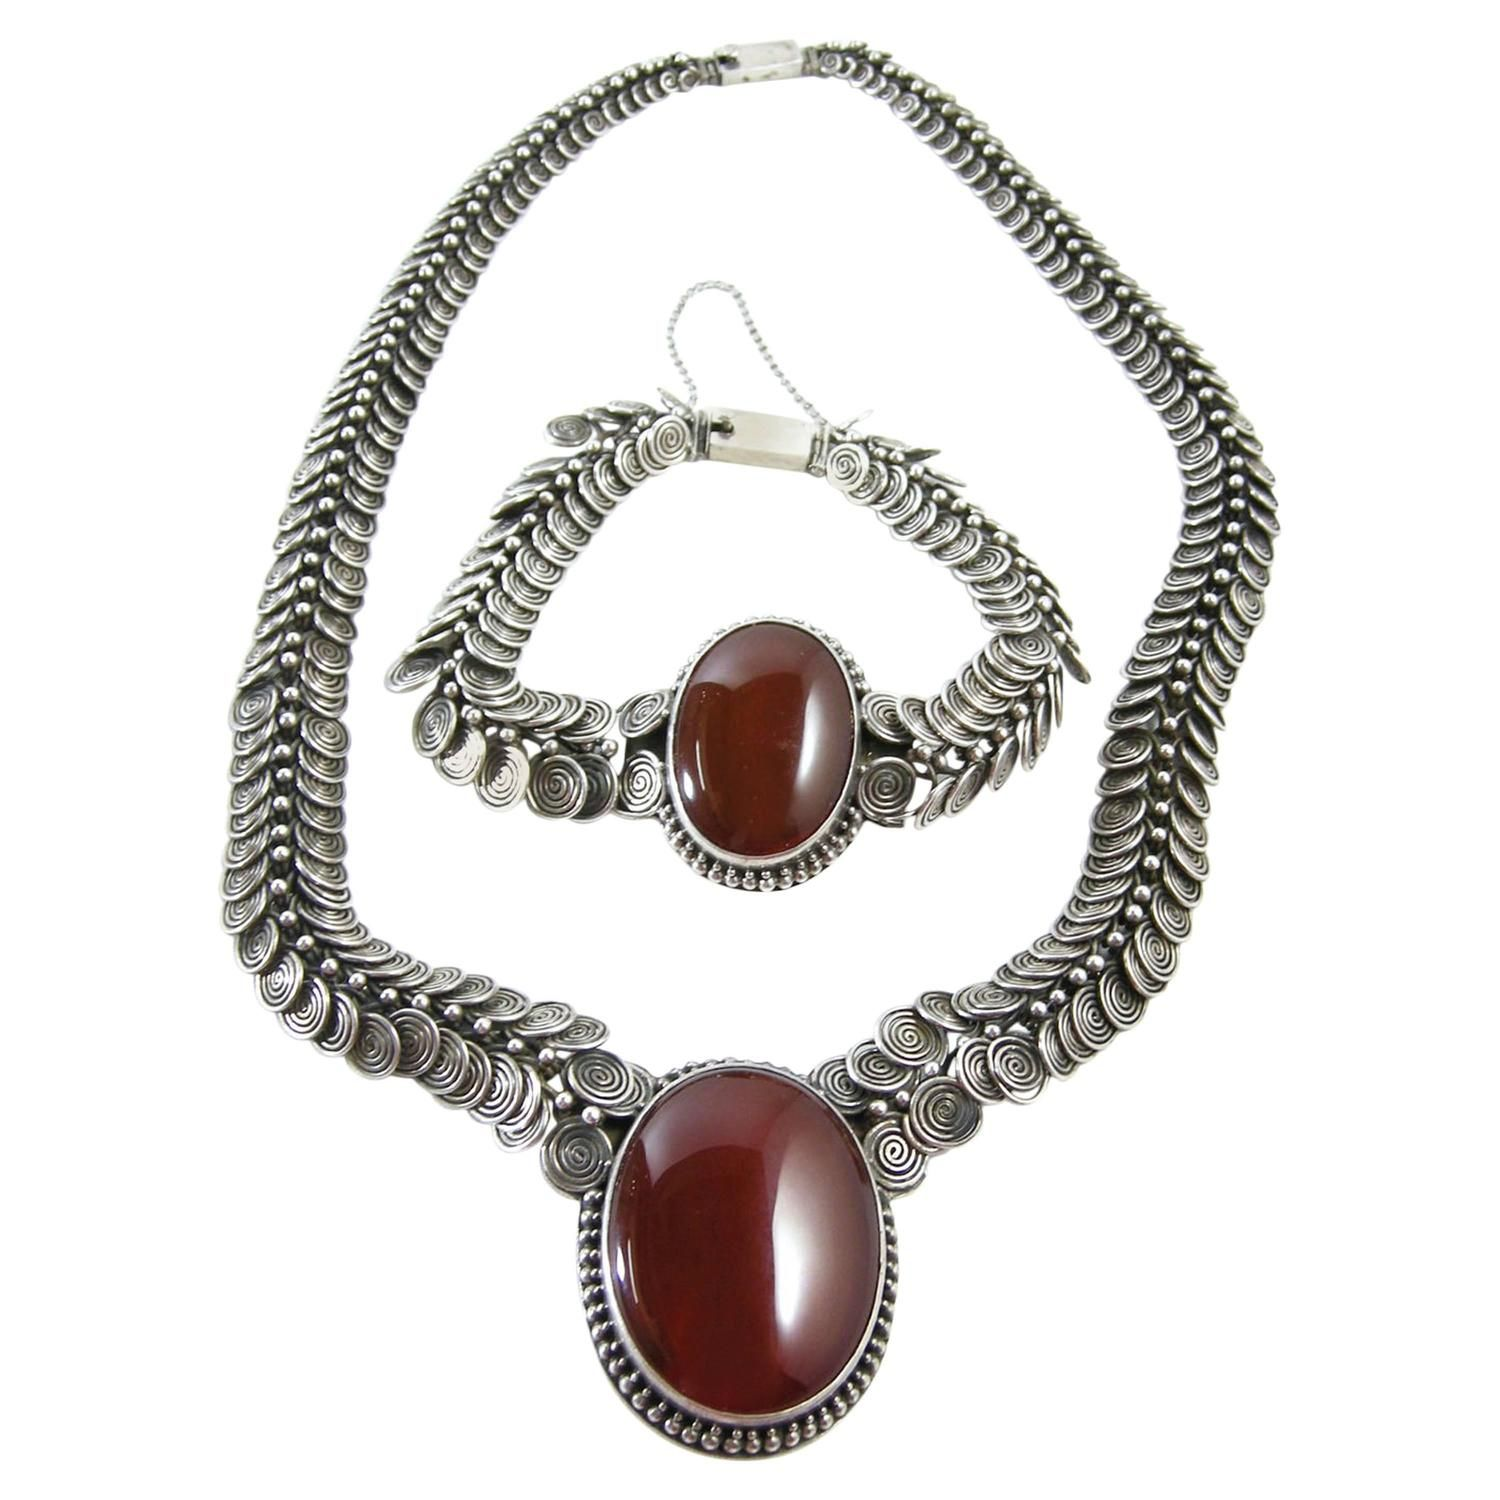 Vintage Sterling Silver Amber Necklace And Bracelet Set | From a unique collection of vintage drop necklaces at https://www.1stdibs.com/jewelry/necklaces/drop-necklaces/